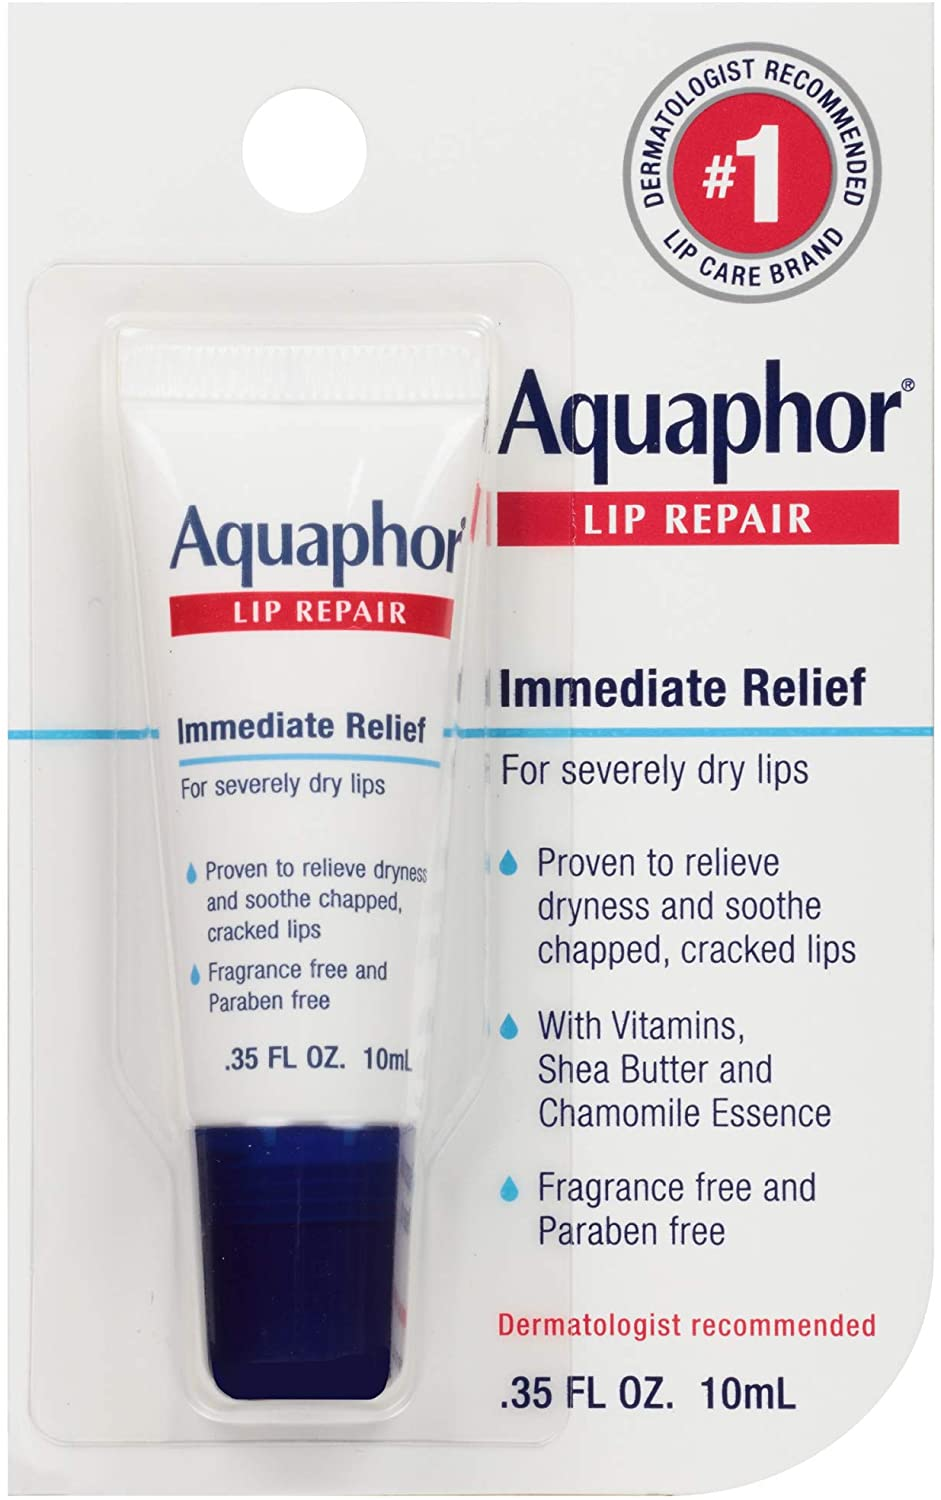 Aquaphor Lip Repair Ointment - Long-lasting Moisture to Soothe Dry Chapped Lips Tube, 0.35 Fl Oz (Pack of 1) : Beauty